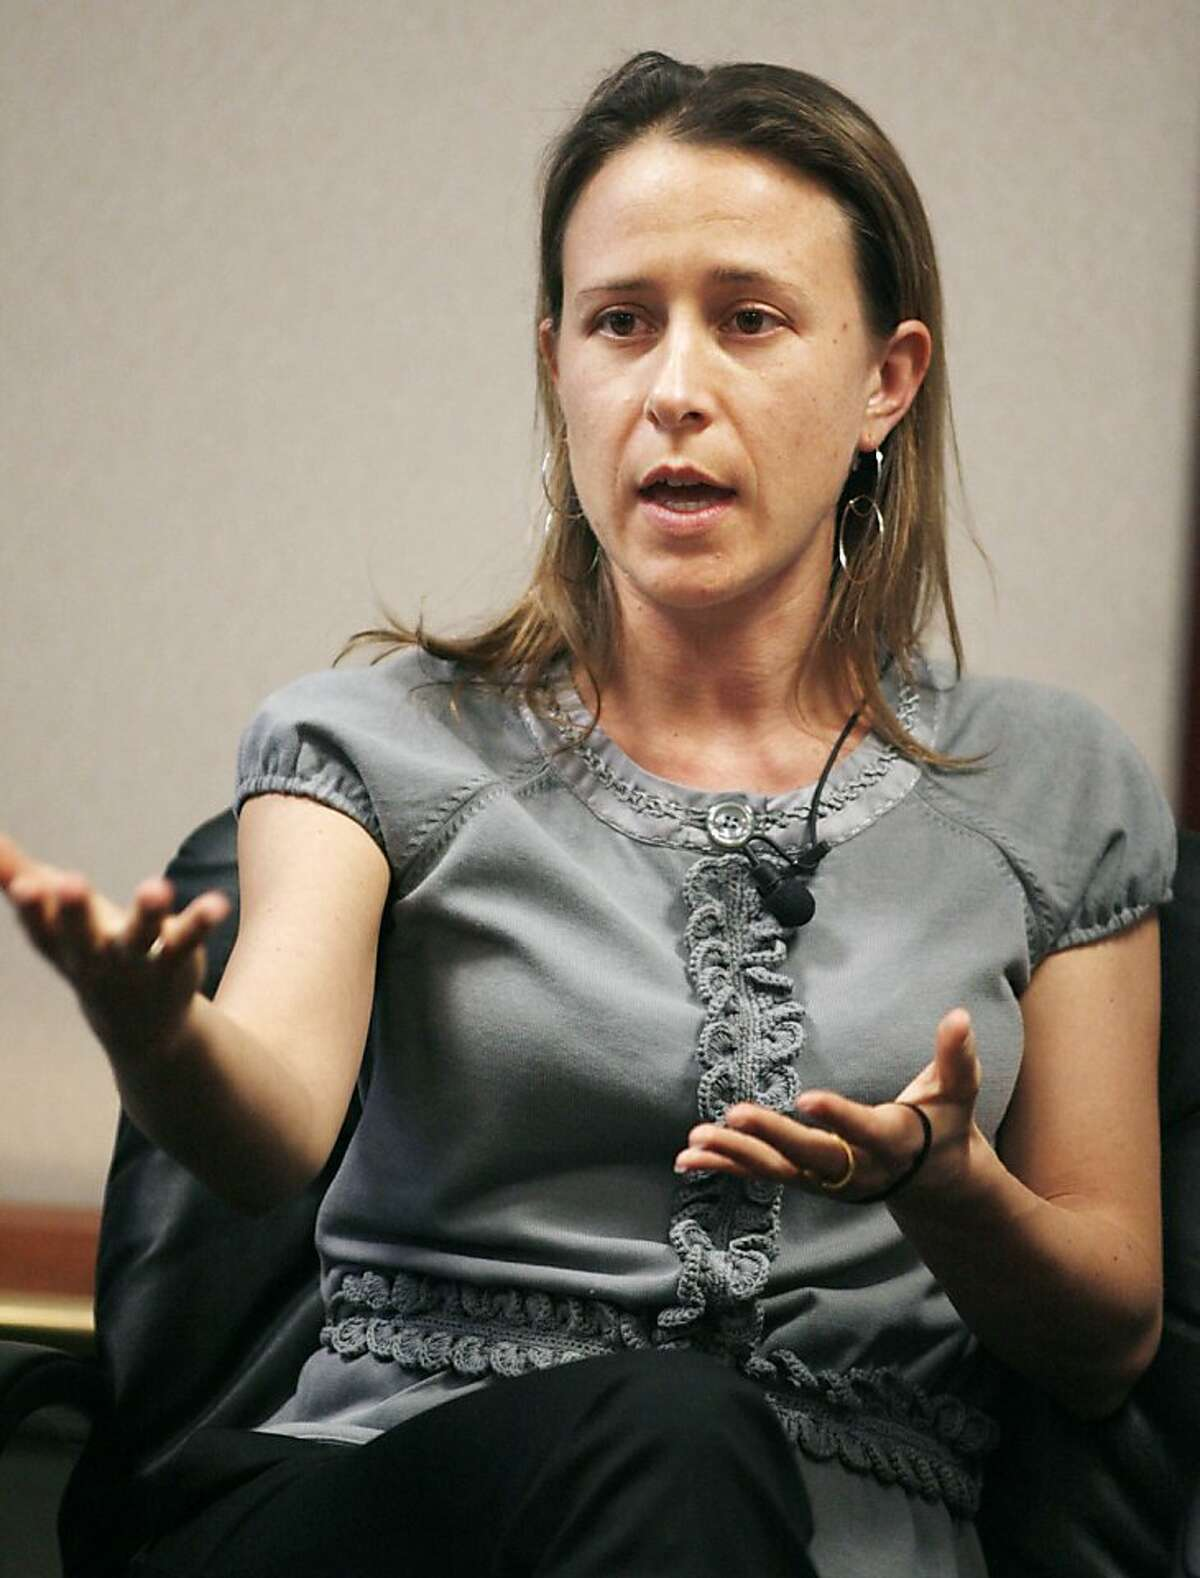 """Leading the list is the new ge? netic testing service, 23andMe, co? founded by Anne Wojcicki, a 35-? year-old biologist """"We're really focusing on the democratization of genetic information,'' said 23andMe co-founder Anne Wojcicki. The private company attracted additional interest to the emerging field because it received early backing from Google co-founder Sergey Brin, who is Wojcicki's husband. Panelist Anne Wojcicki, co-founder of 23and Me Inc., which is a web-based service that helps you read and understand your DNA, takes part in the Revolutionizing Health Care and Research in the Developing World panel at the Global Overview panel at 2008 Milken Institute Global Conference in Beverly Hills California April 28, 2008. Wojcicki is married to Google cofounder Sergey Brin. REUTERS/Fred Prouser (UNITED STATES)"""